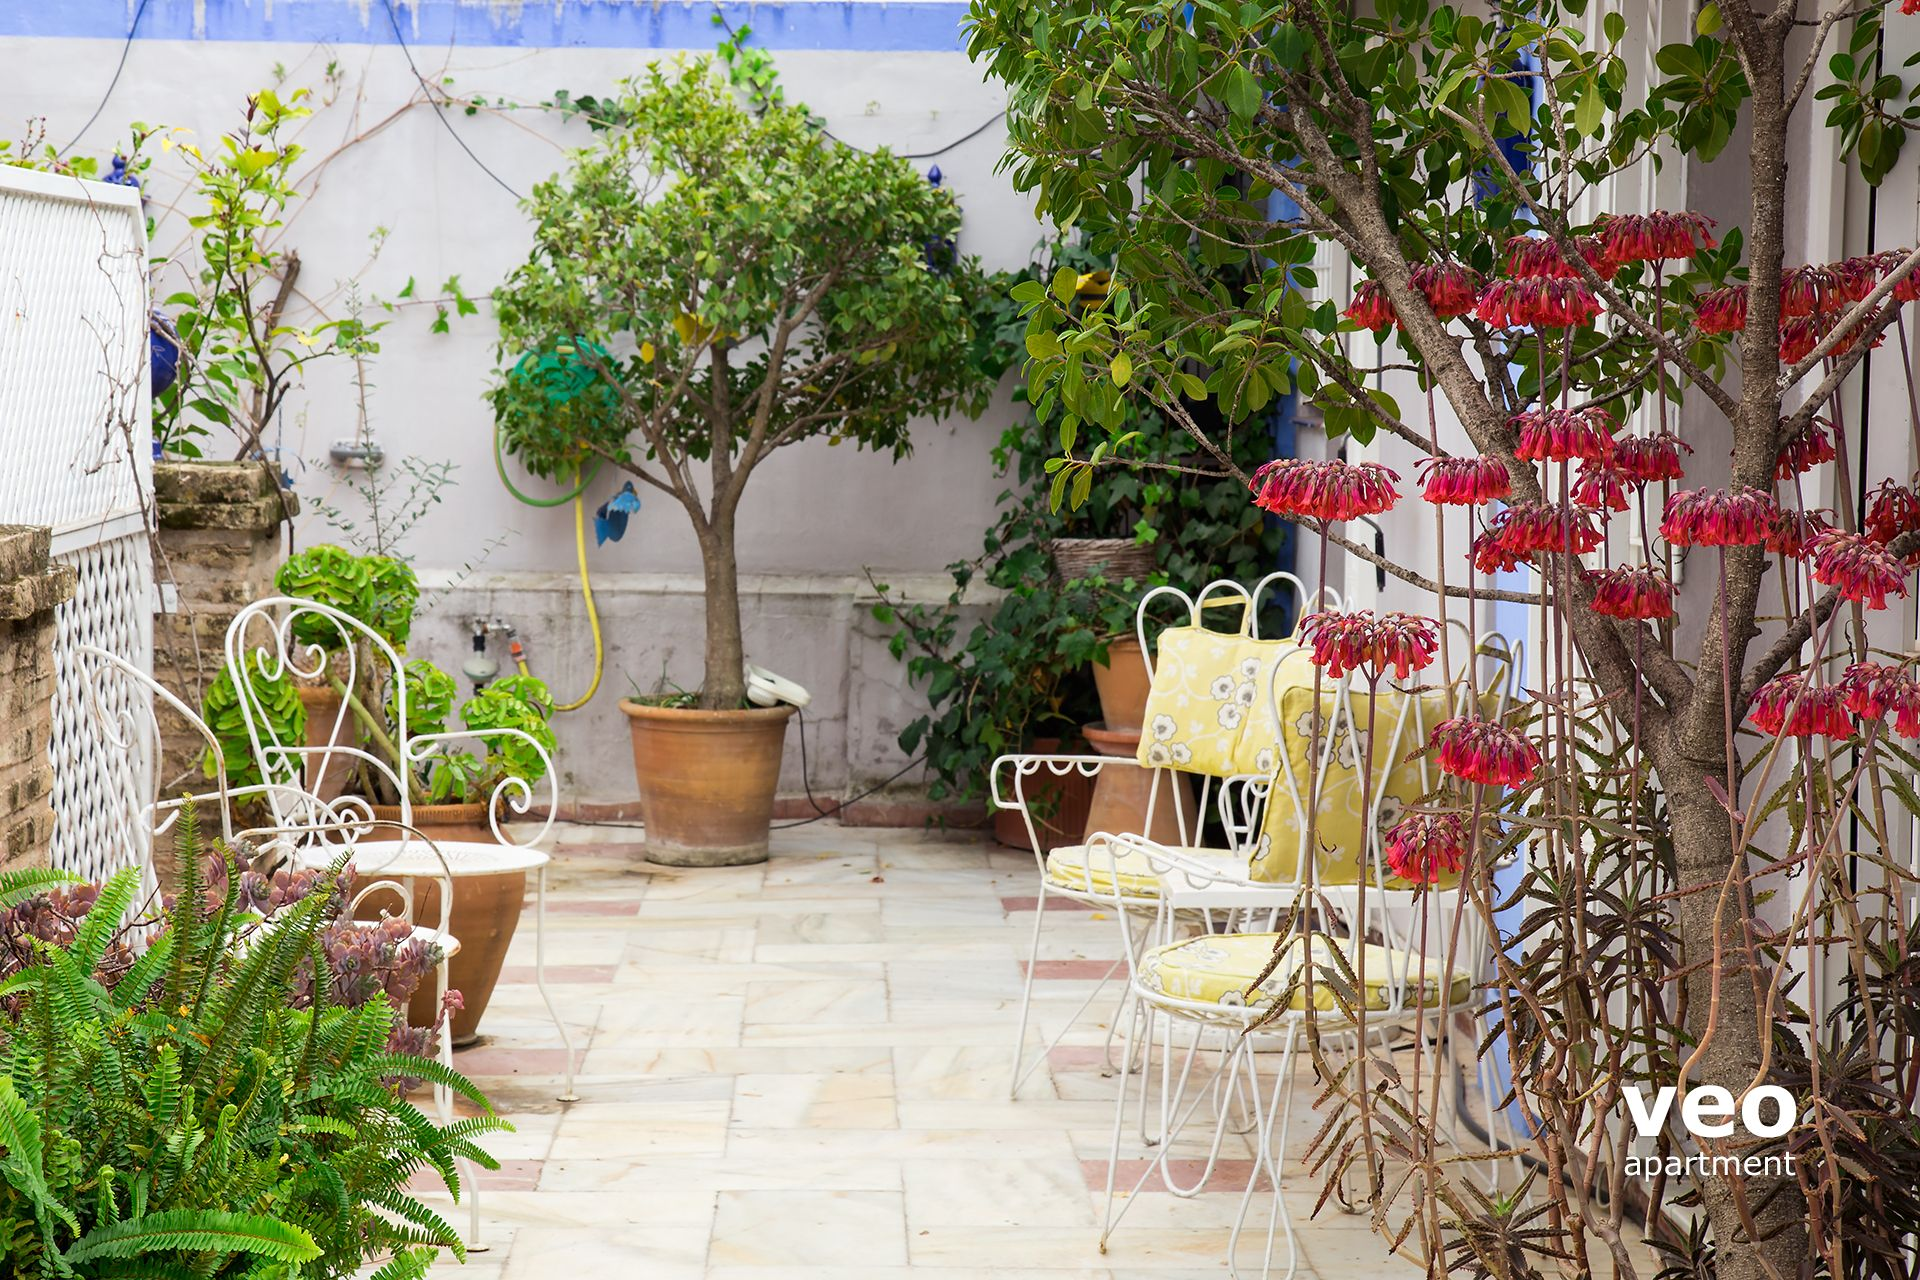 Seville spain apartments gallery image of this property for Terrace plants